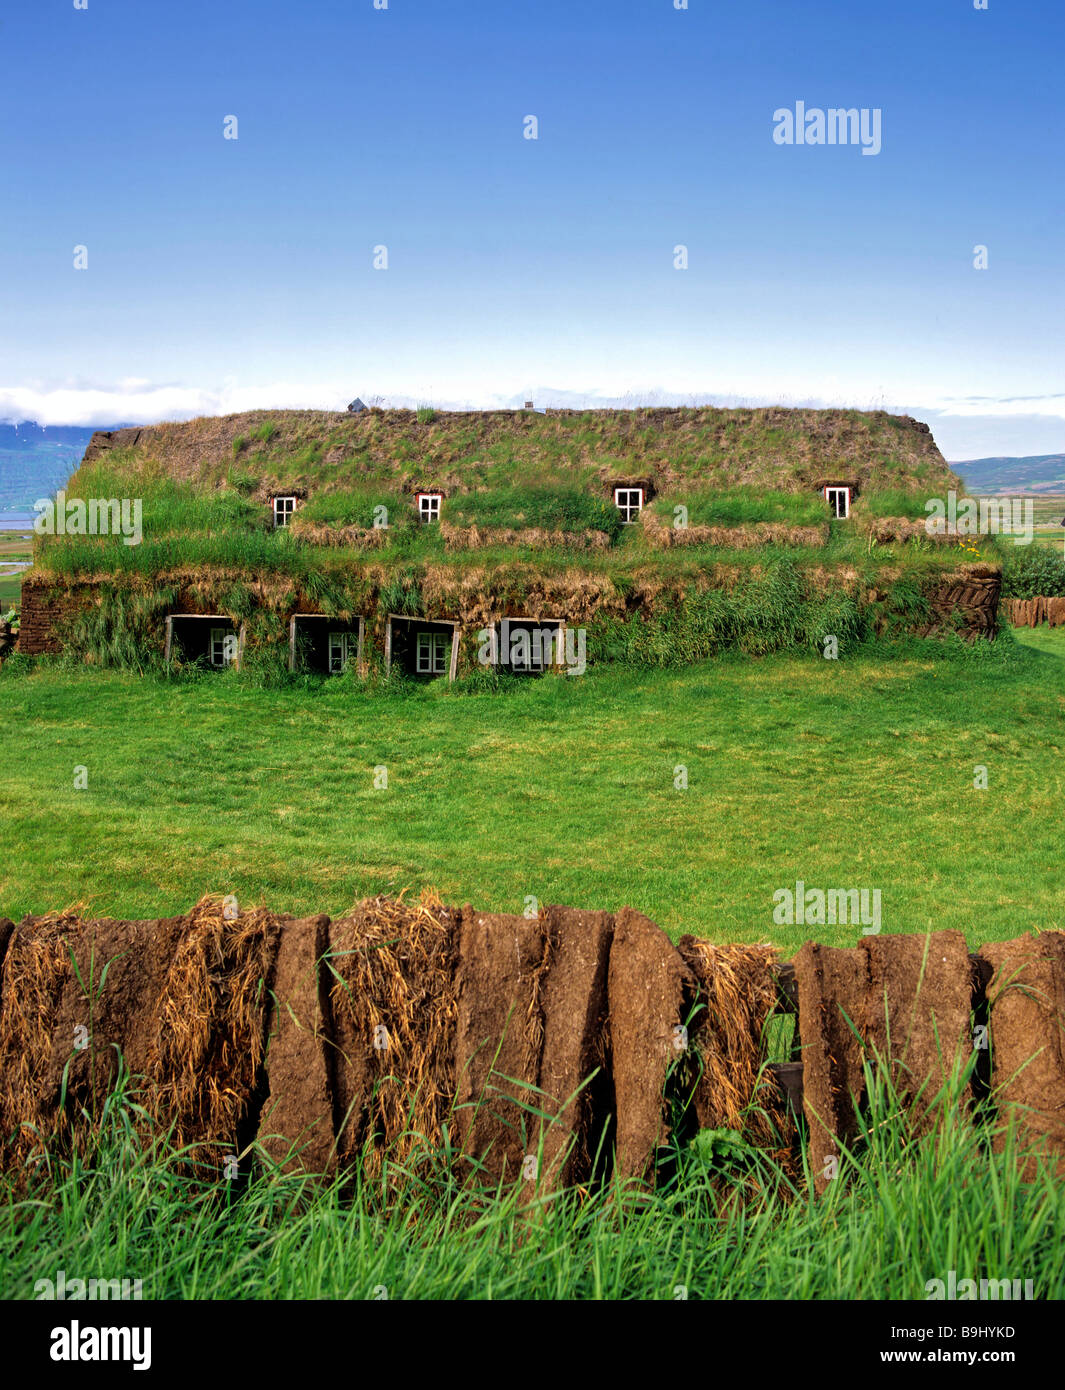 Sod houses, turf houses, museum, Laufas, Iceland - Stock Image